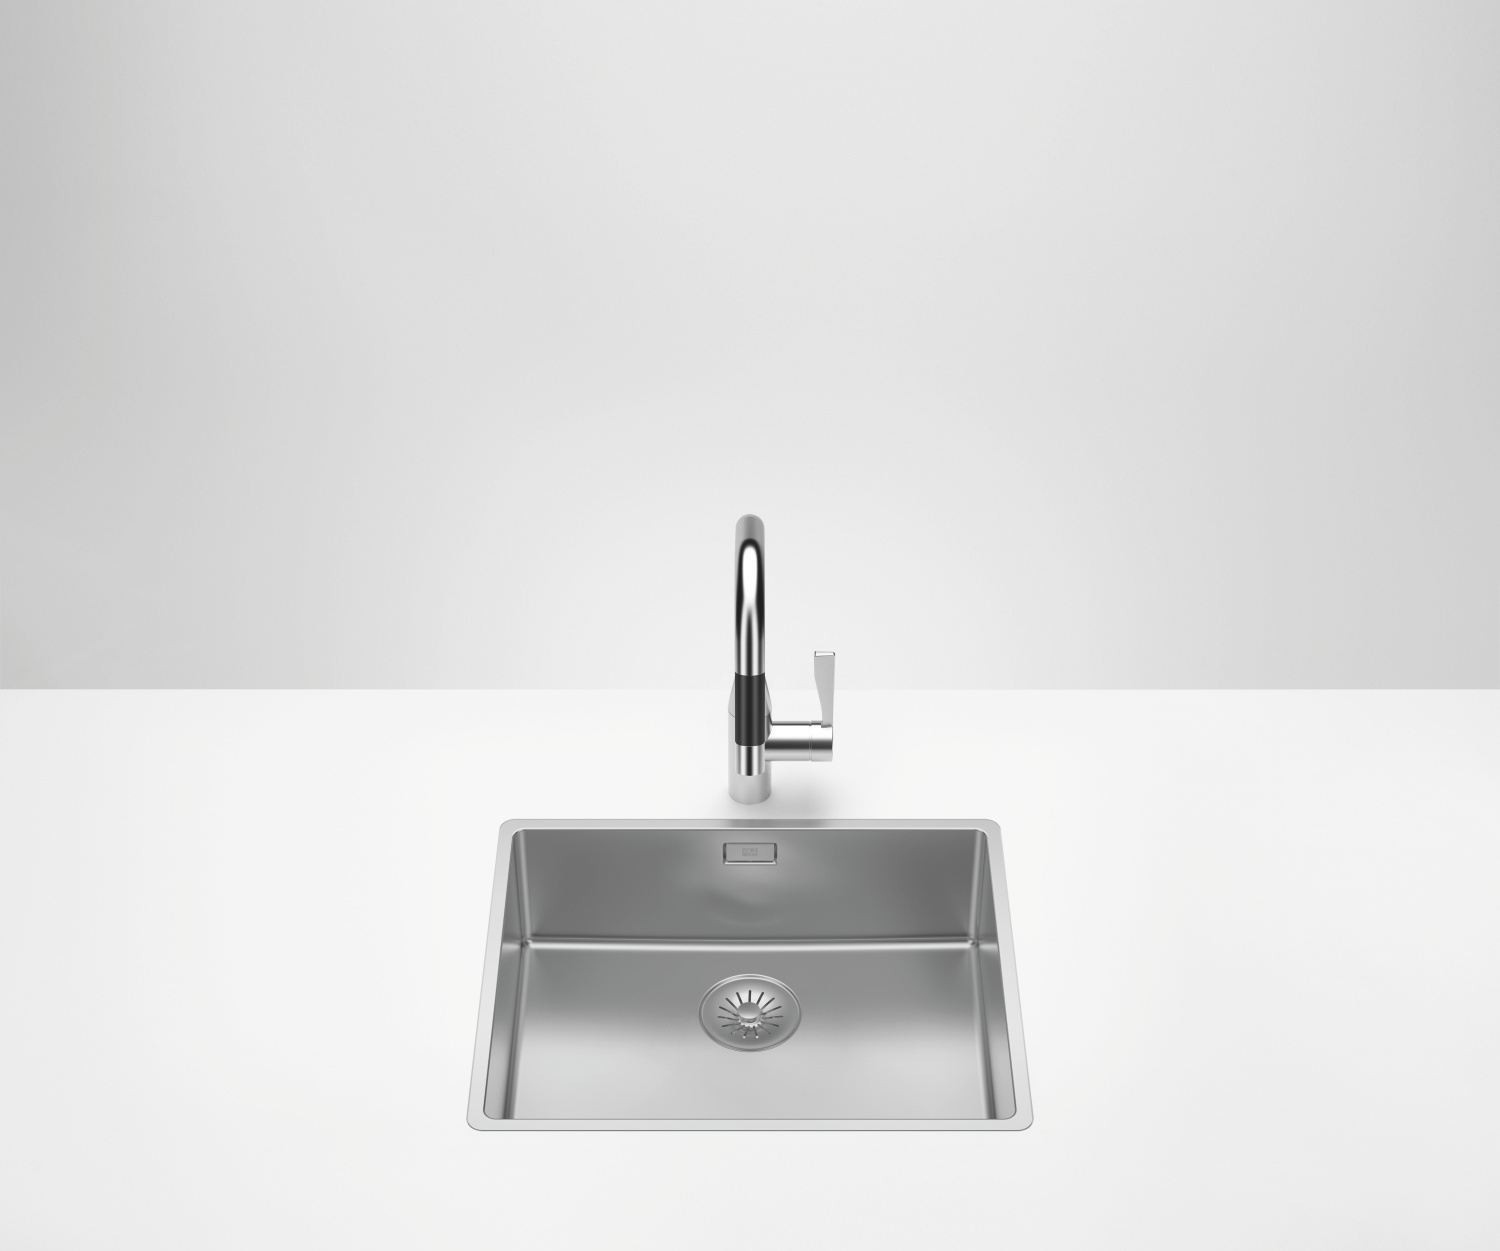 Single sink - polished high-grade steel - 38 501 003-85